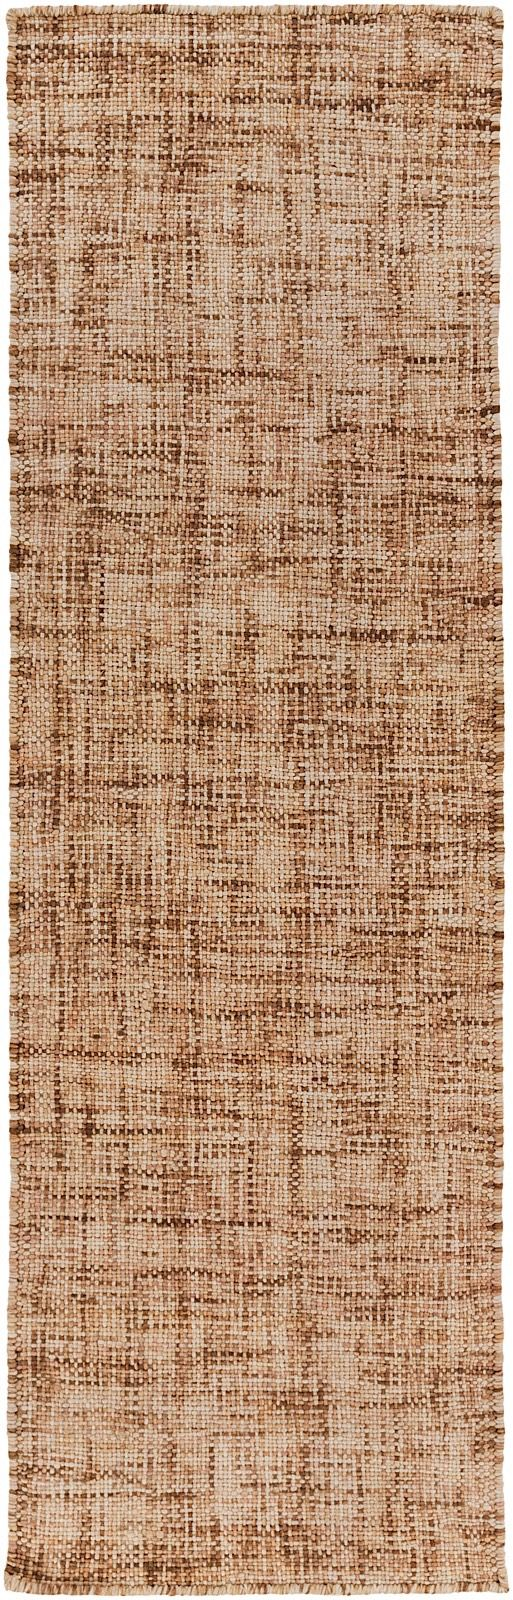 surya plymouth solid/striped area rug collection